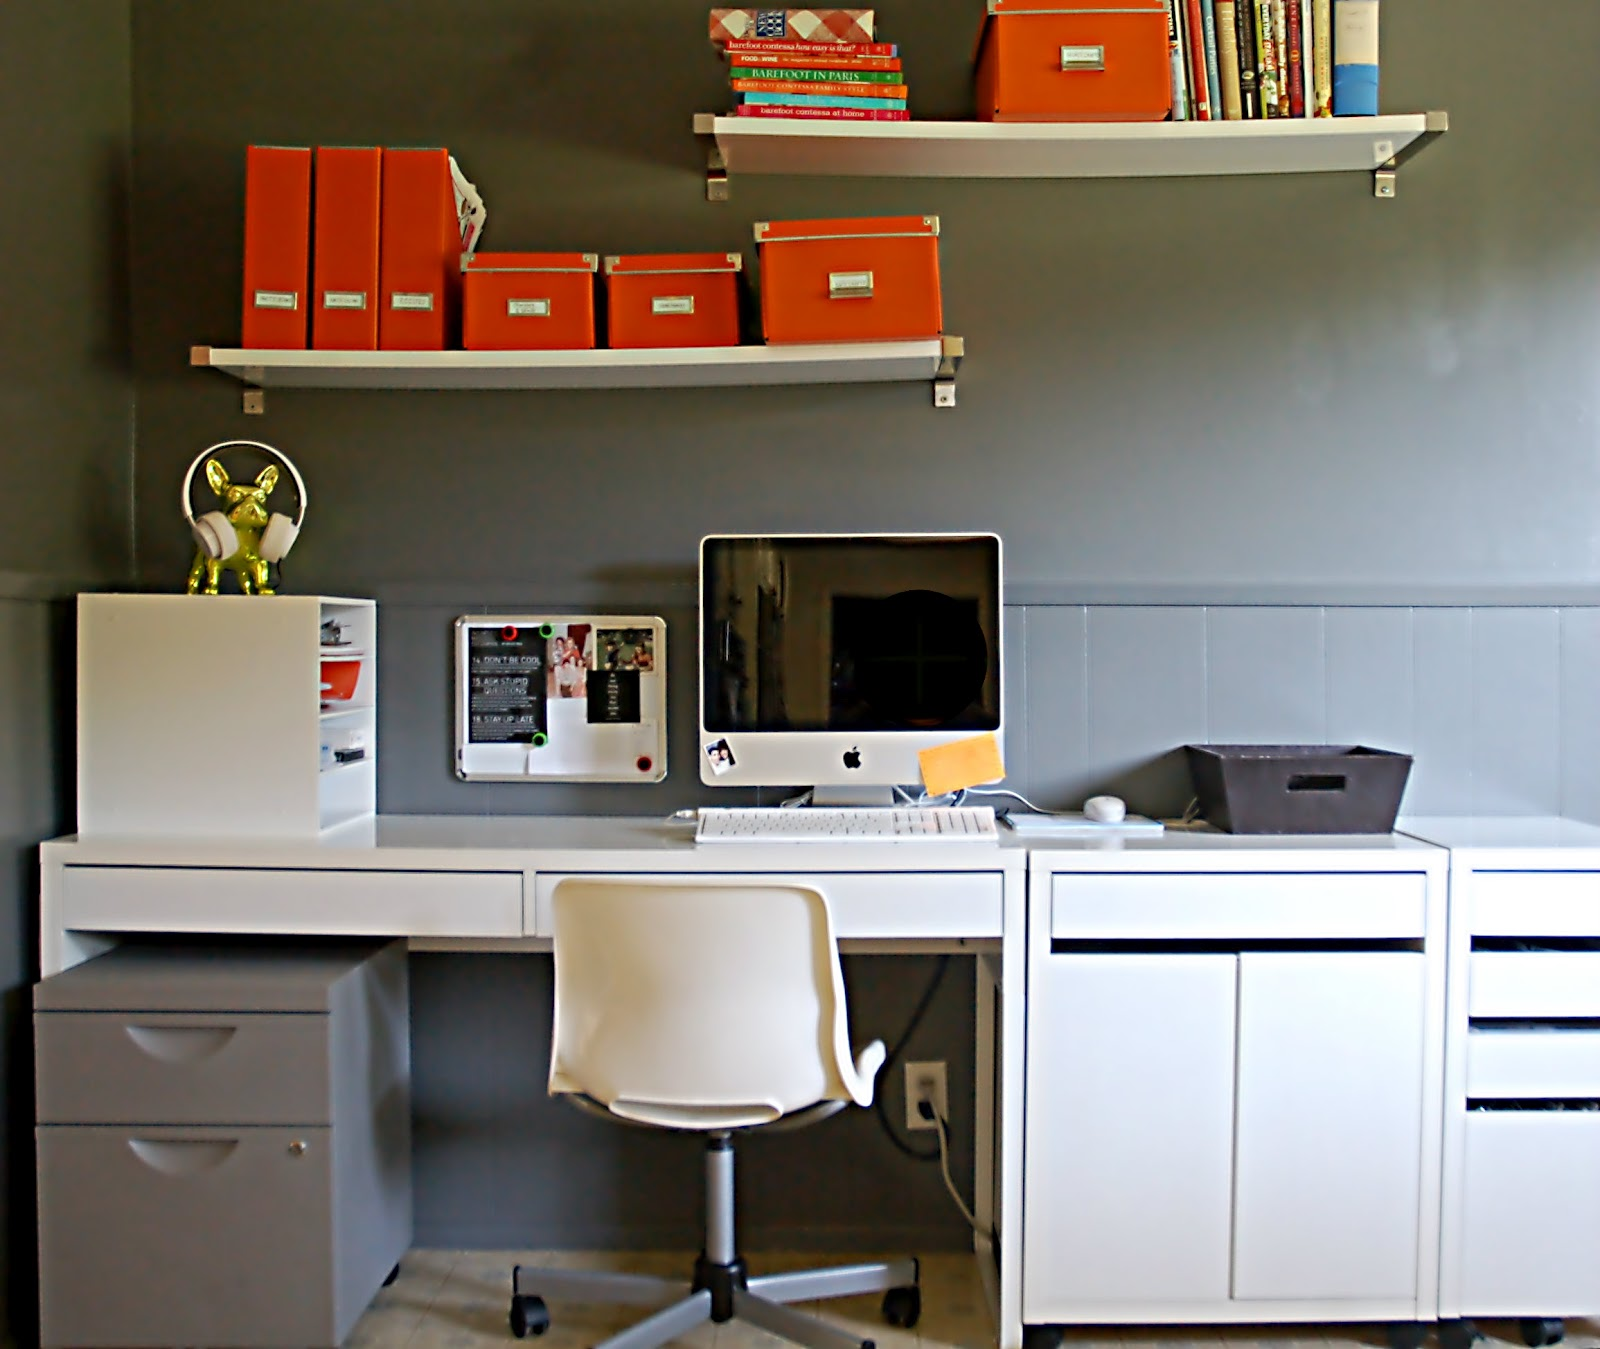 Office:  Desk & Shelf Organization